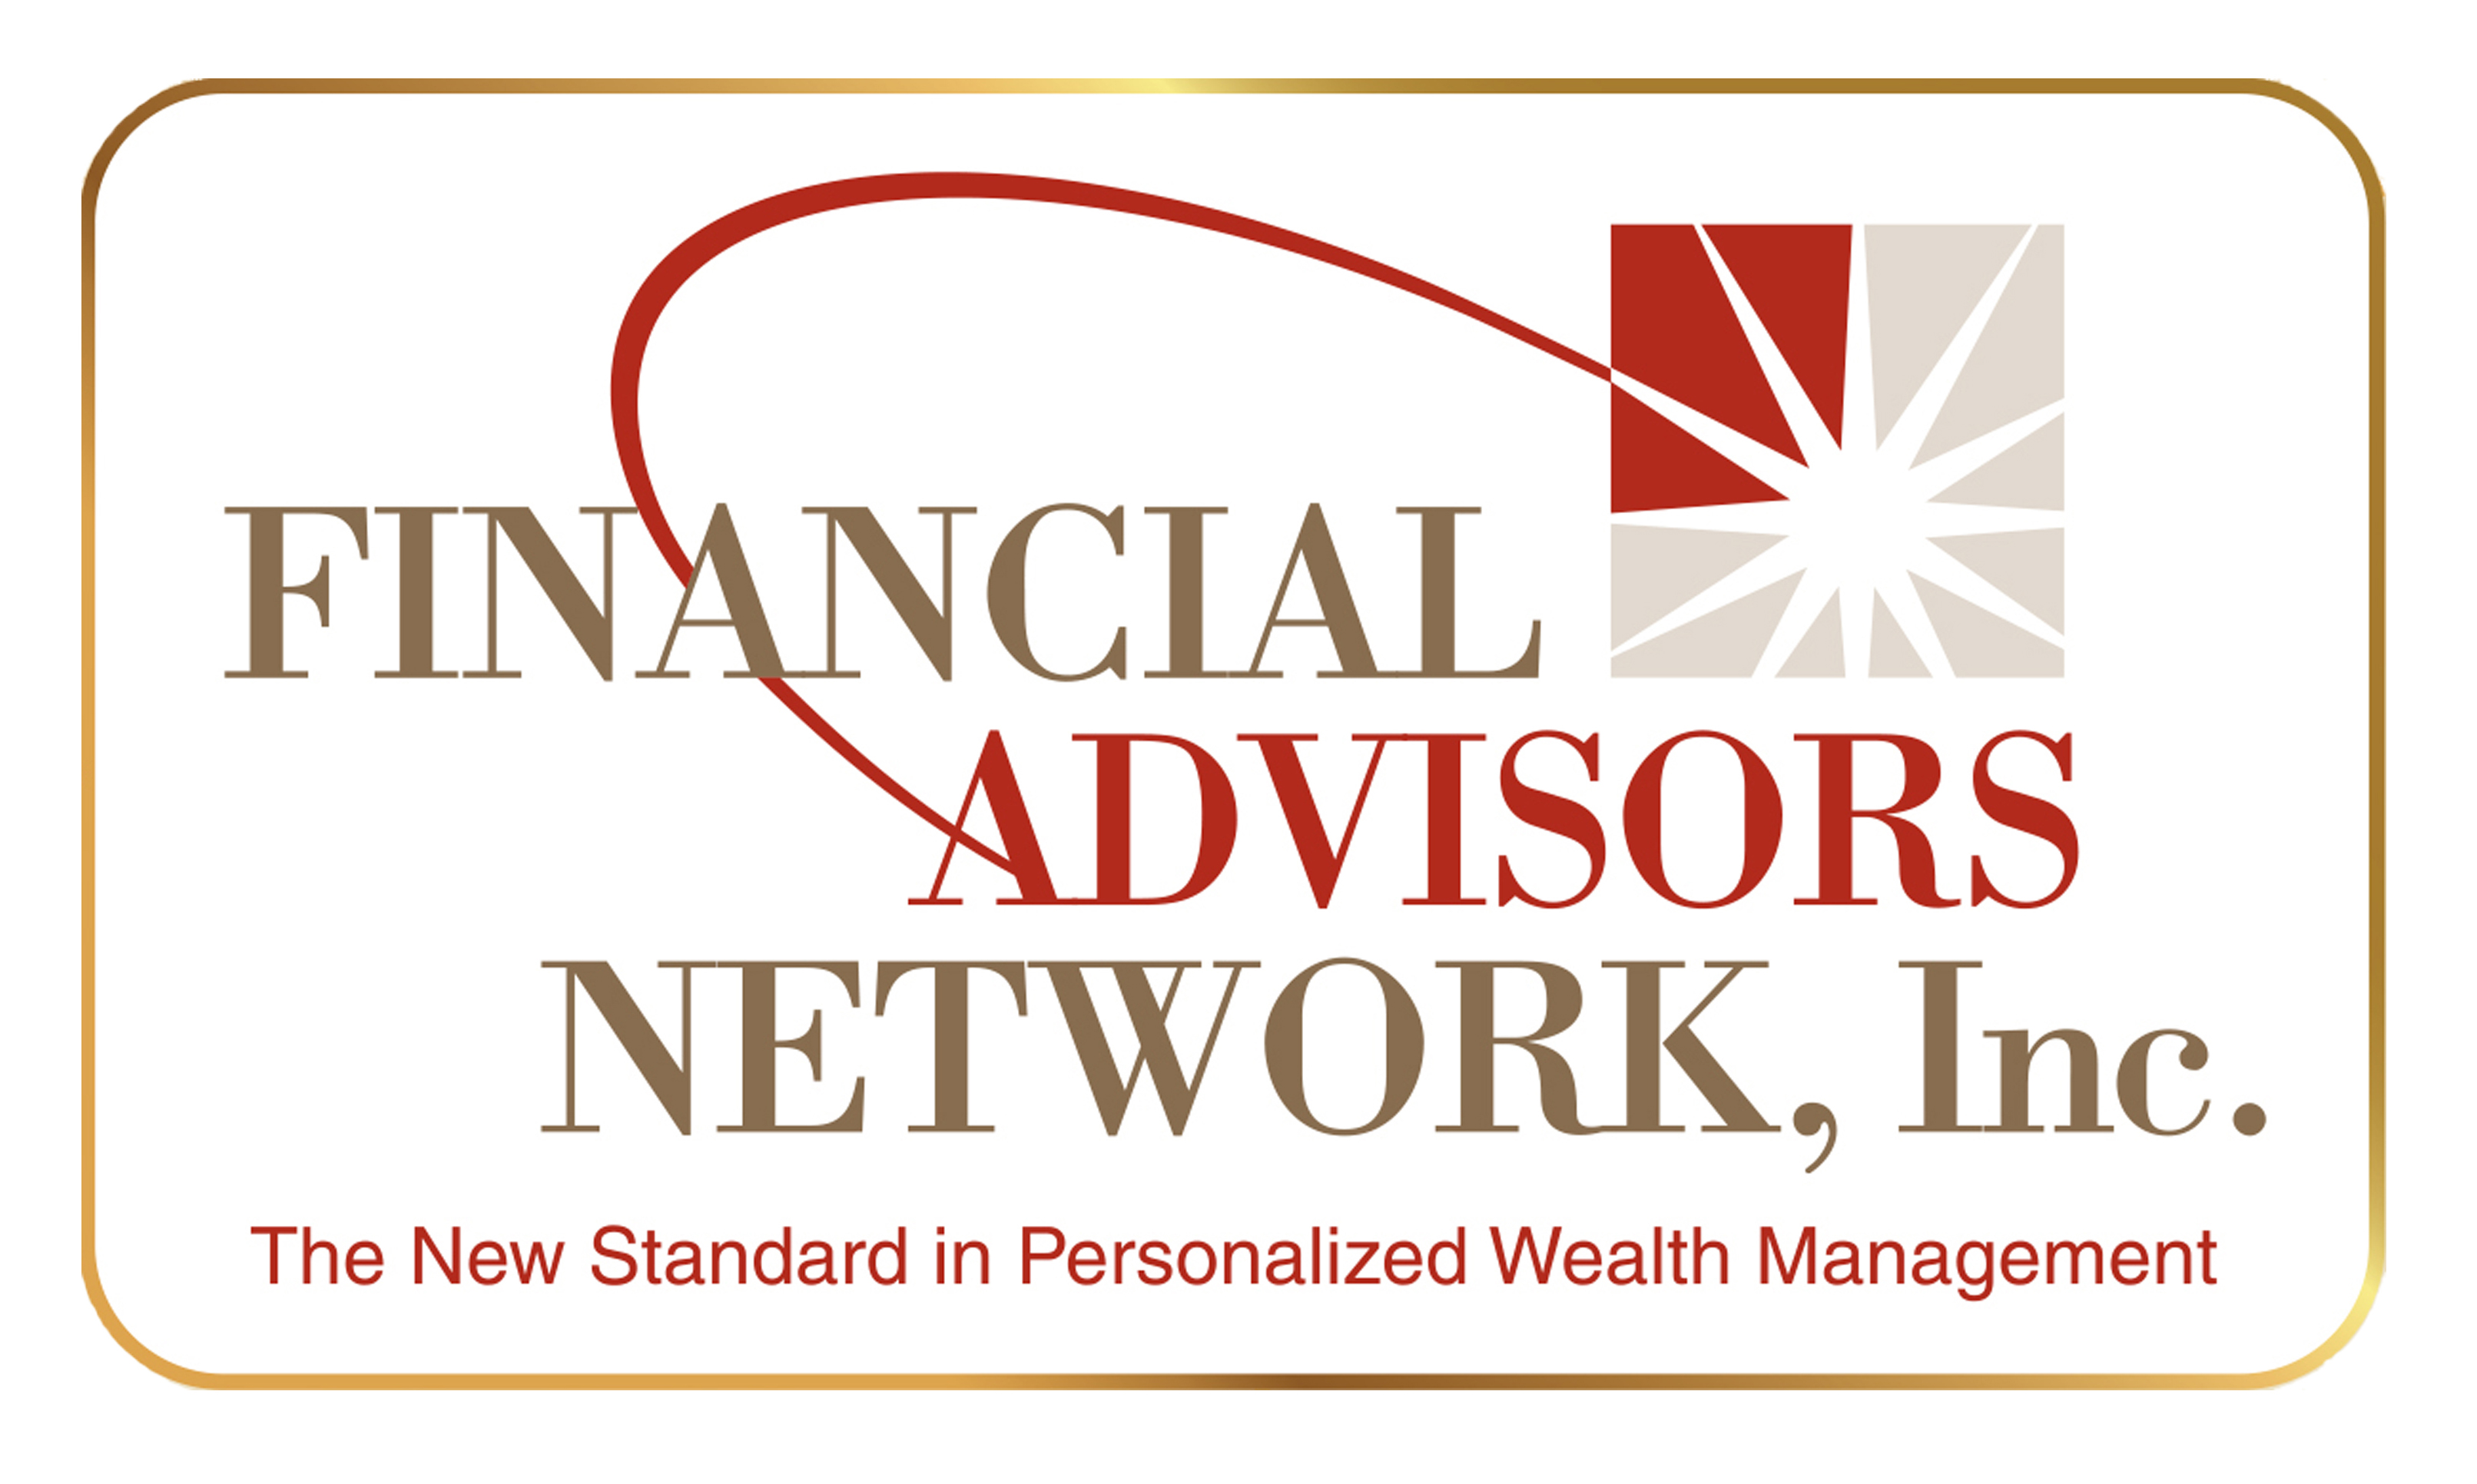 Financial Advisors Network